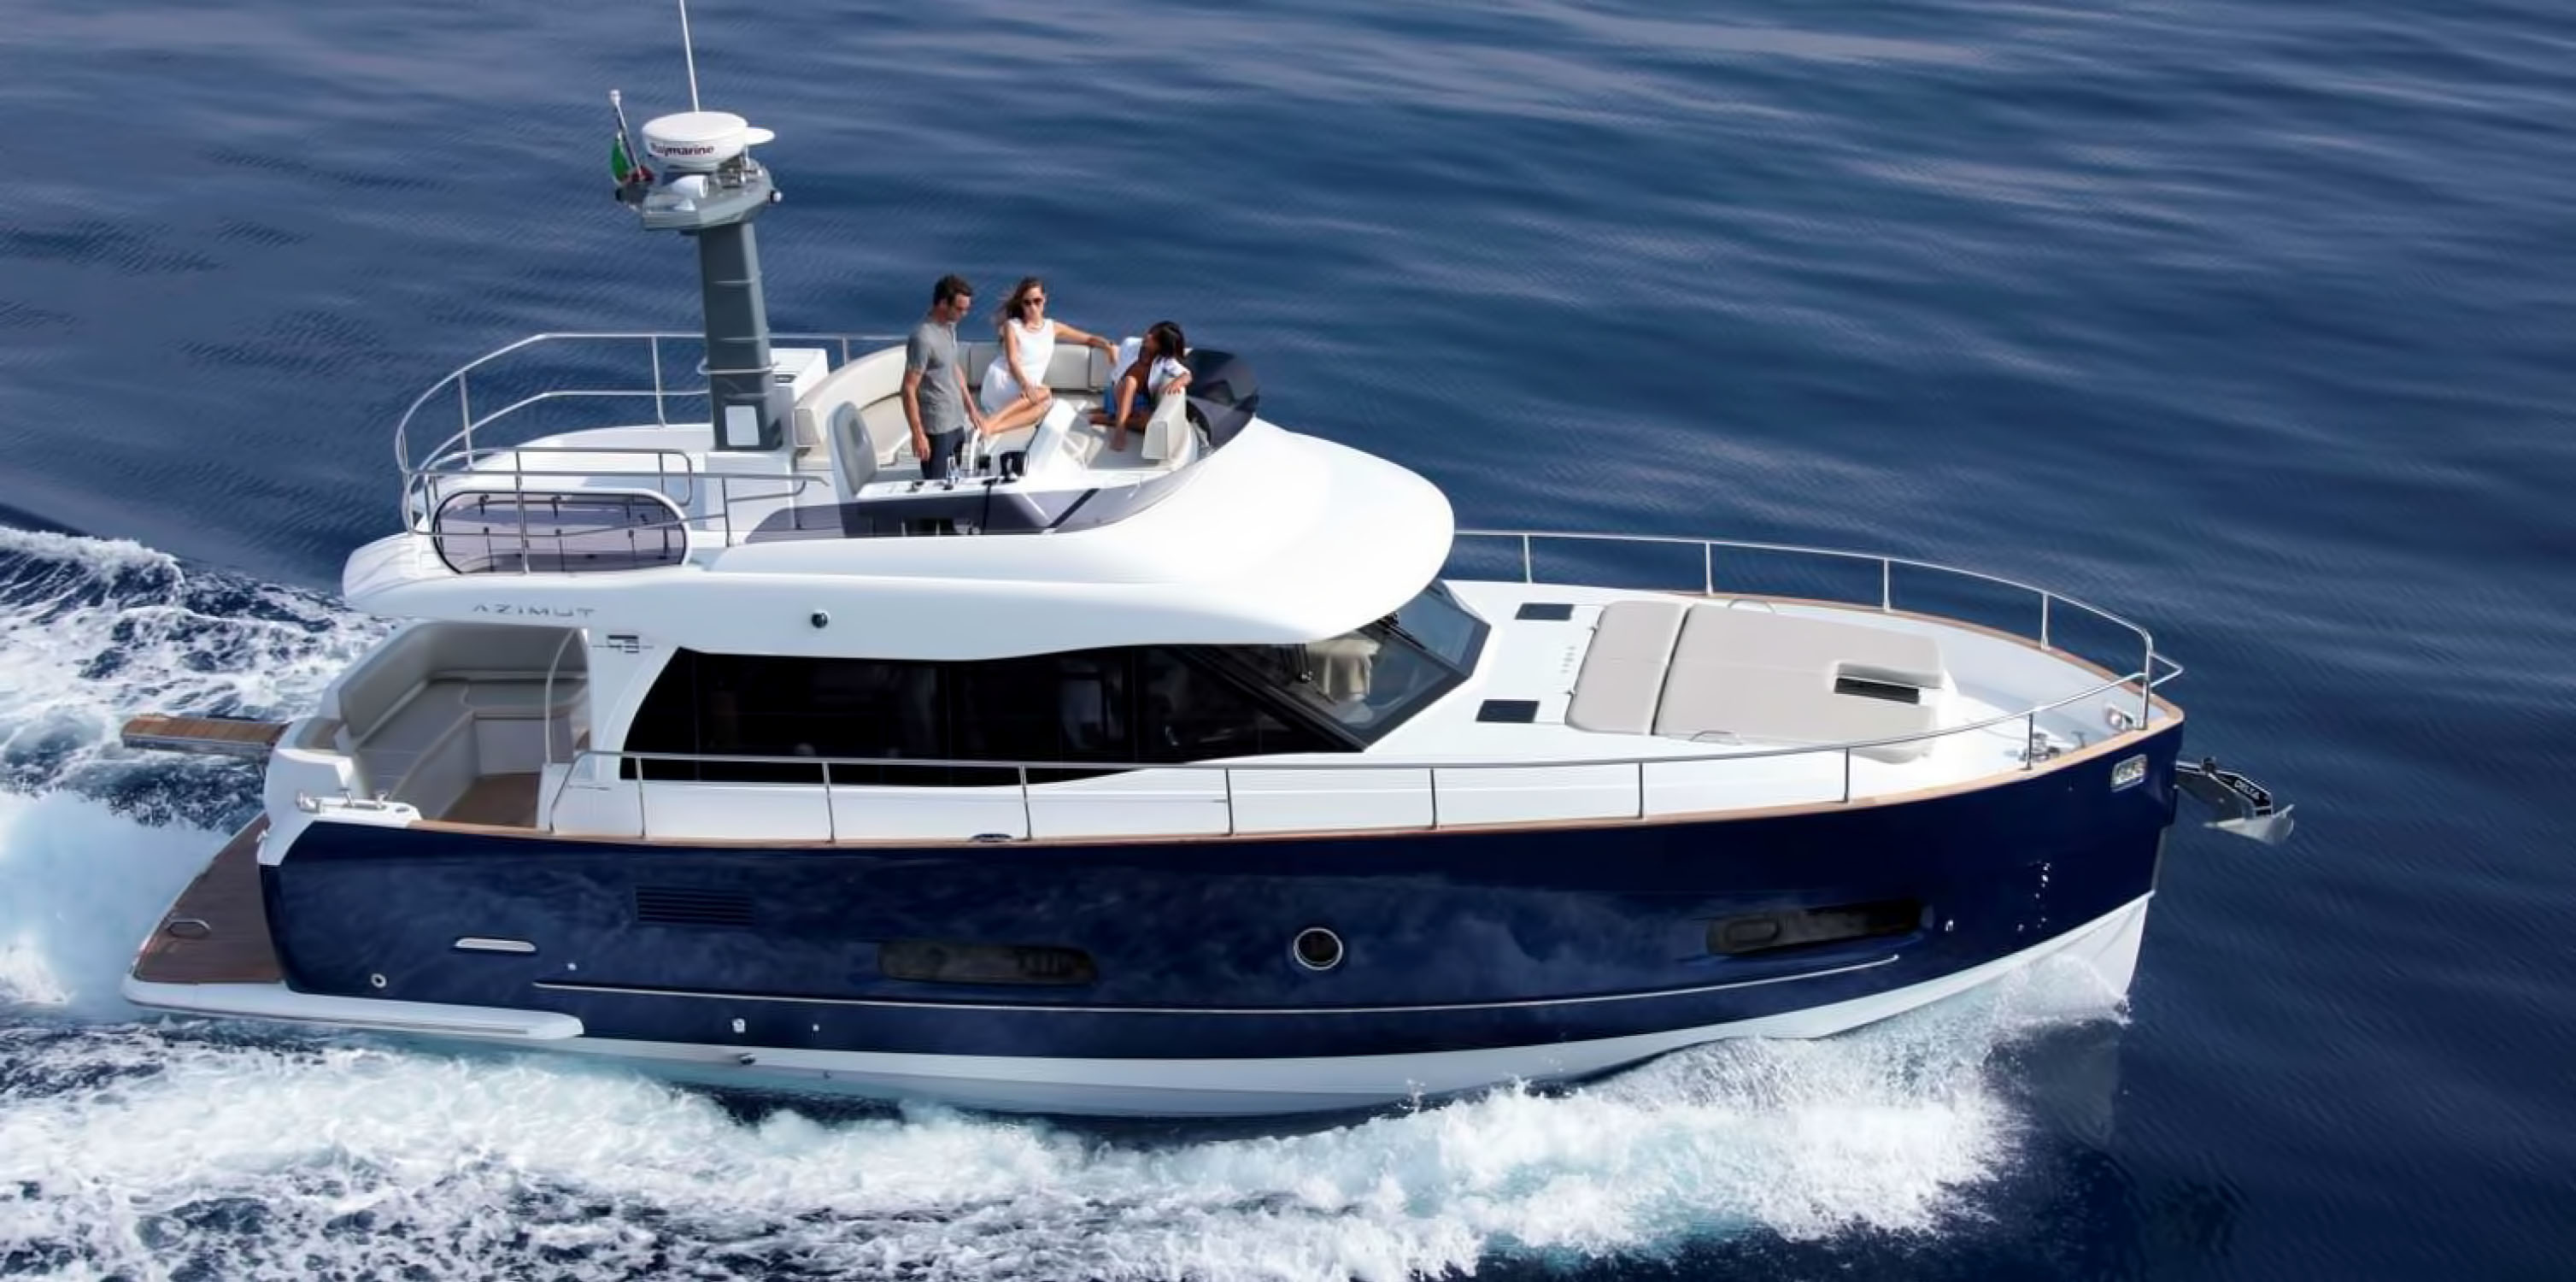 Azimut Magellano 43 Yacht for sale in Los Angeles